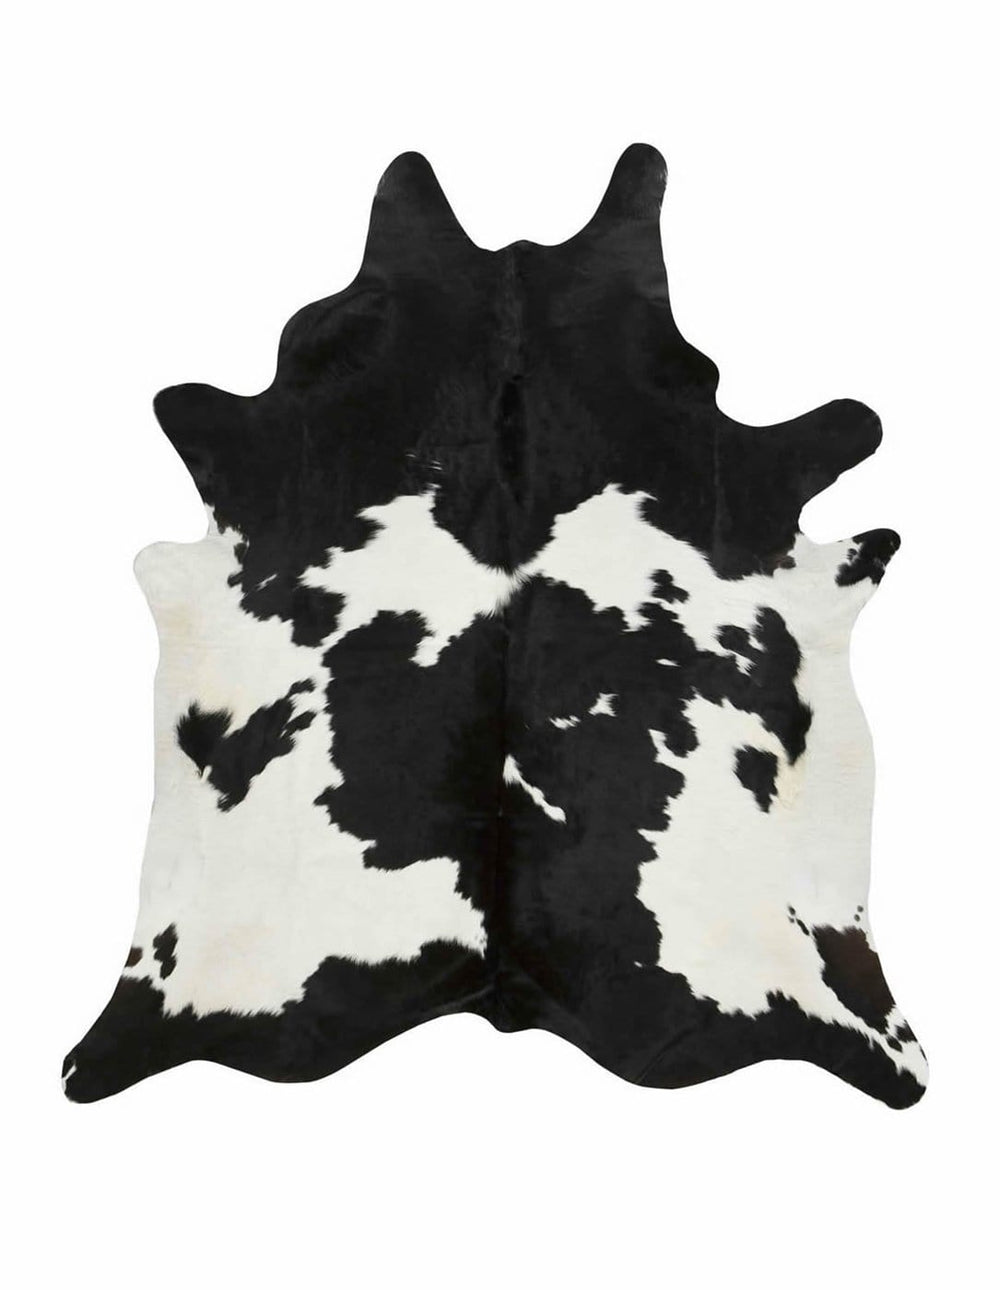 Black and White Special Extra Large Hide Rug - Rugs1 - High Fashion Home